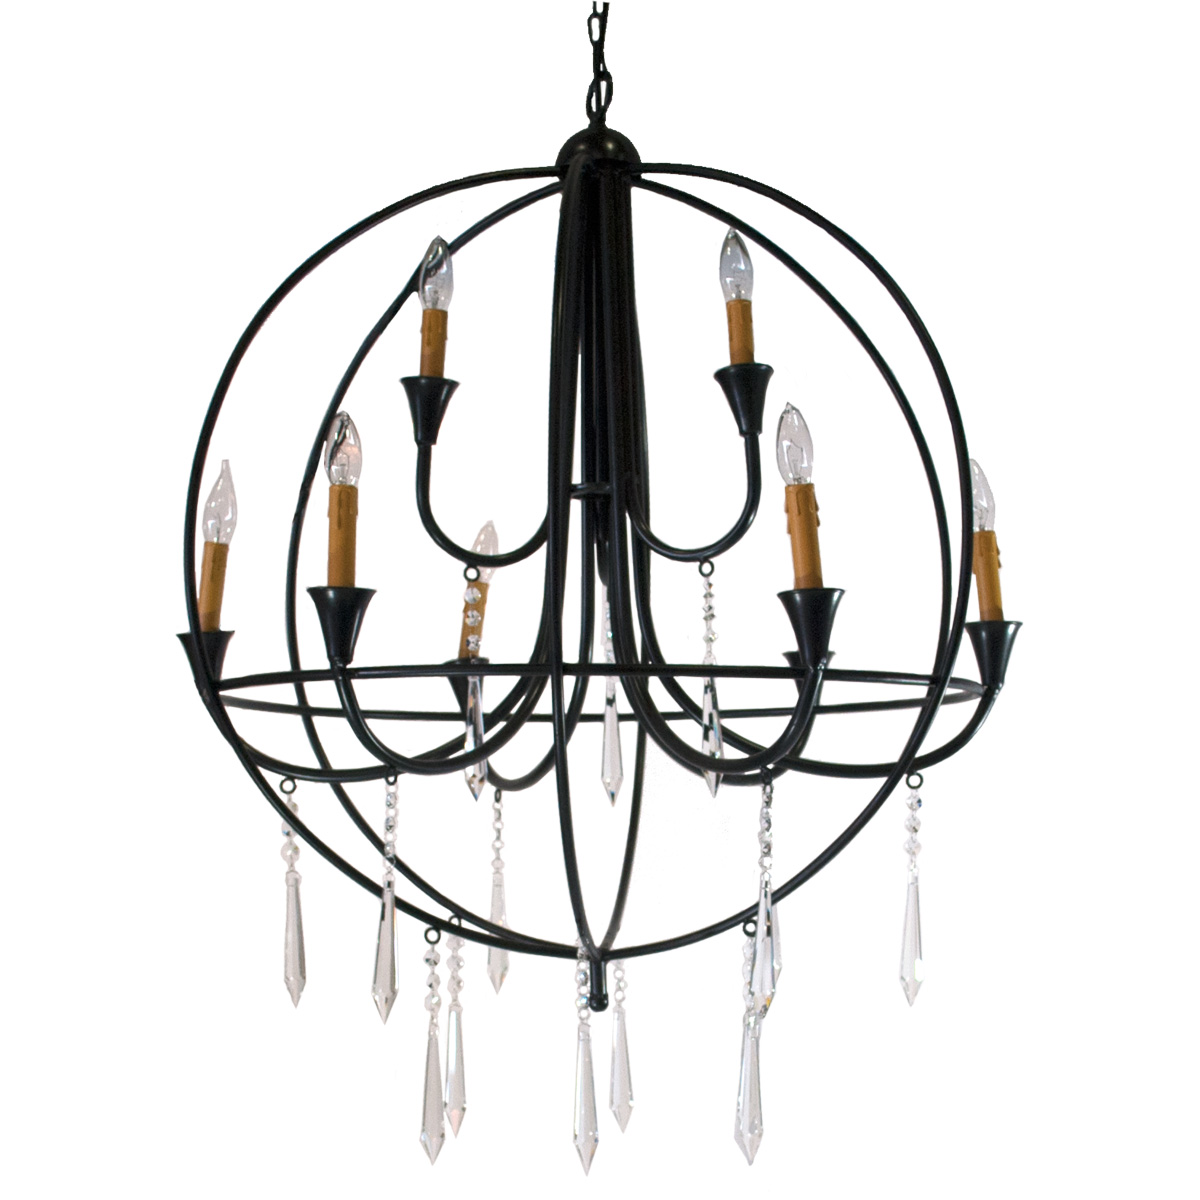 Wrought Iron Crystal Orb Chandelier